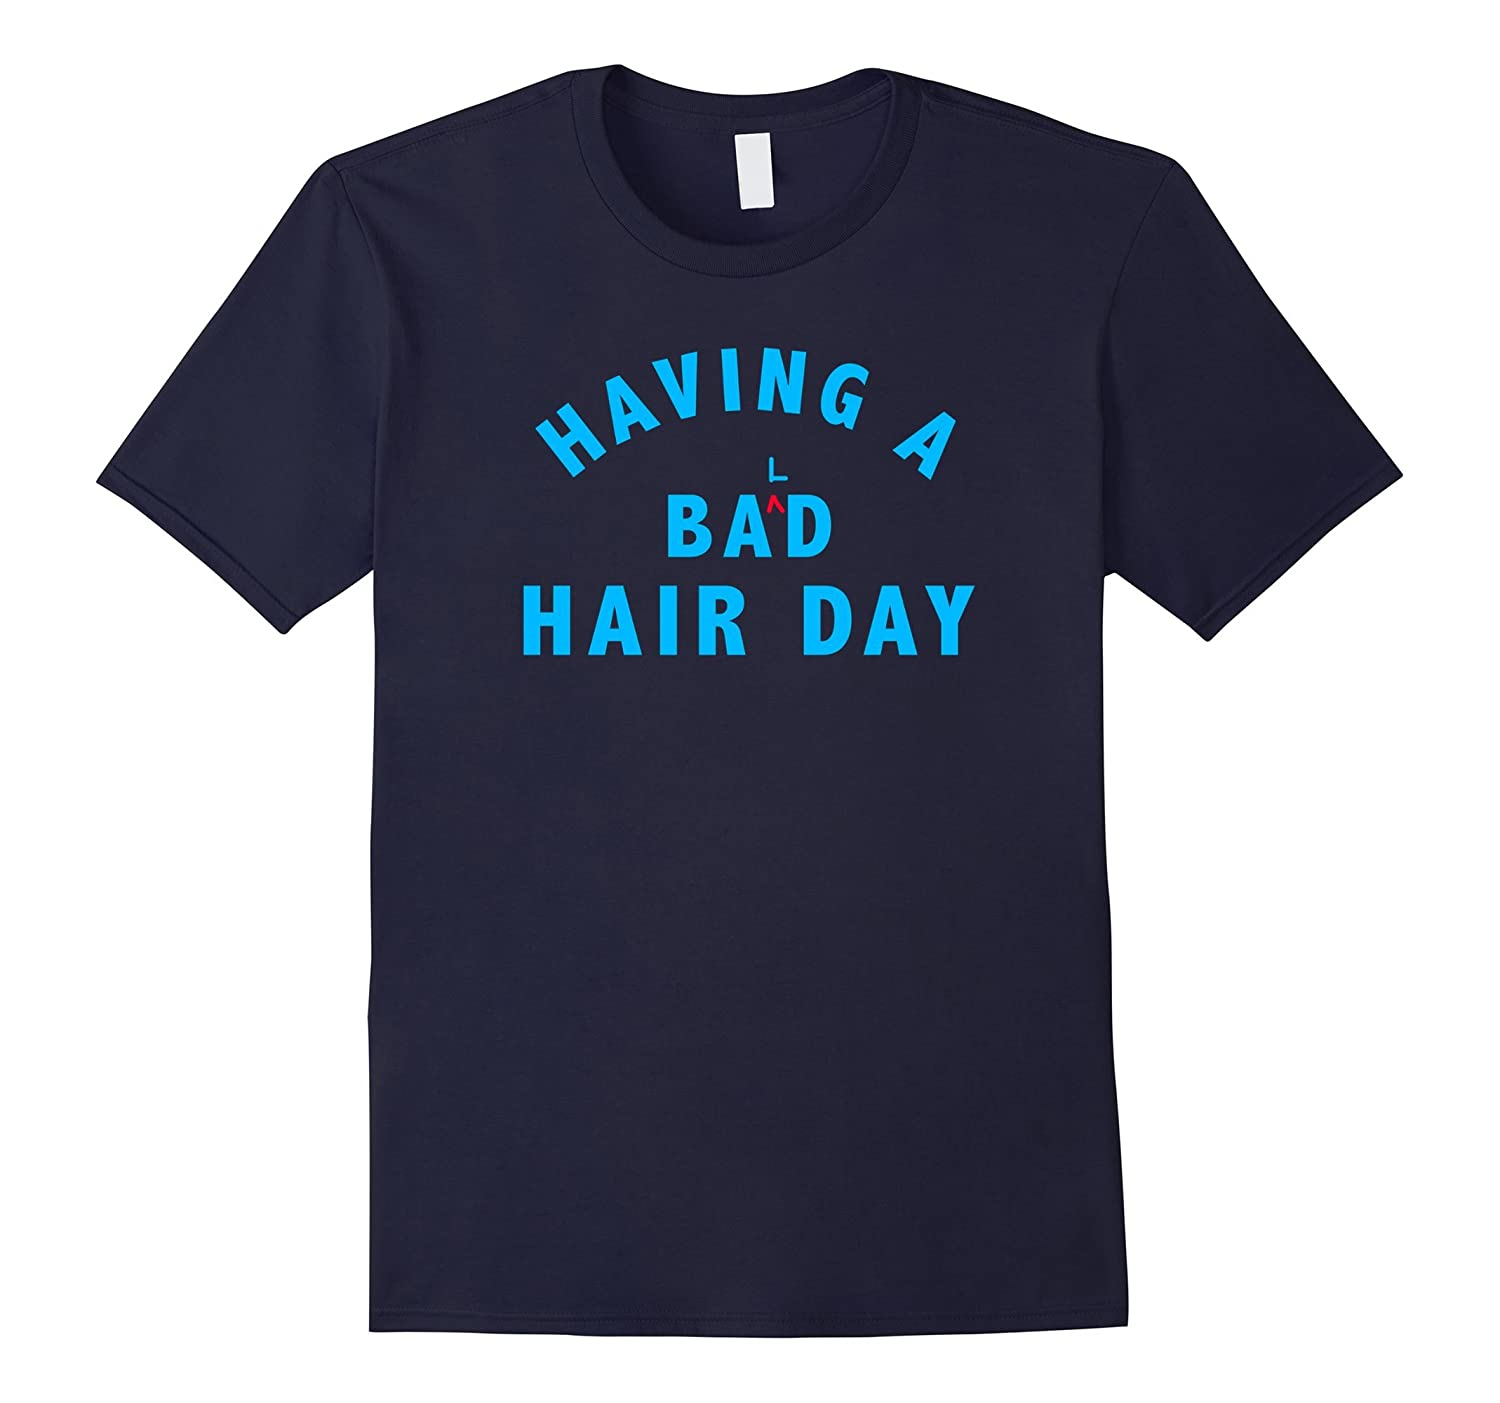 Alopecia Awareness Funny Bald Bad Hair Day Joke Shirt-FL